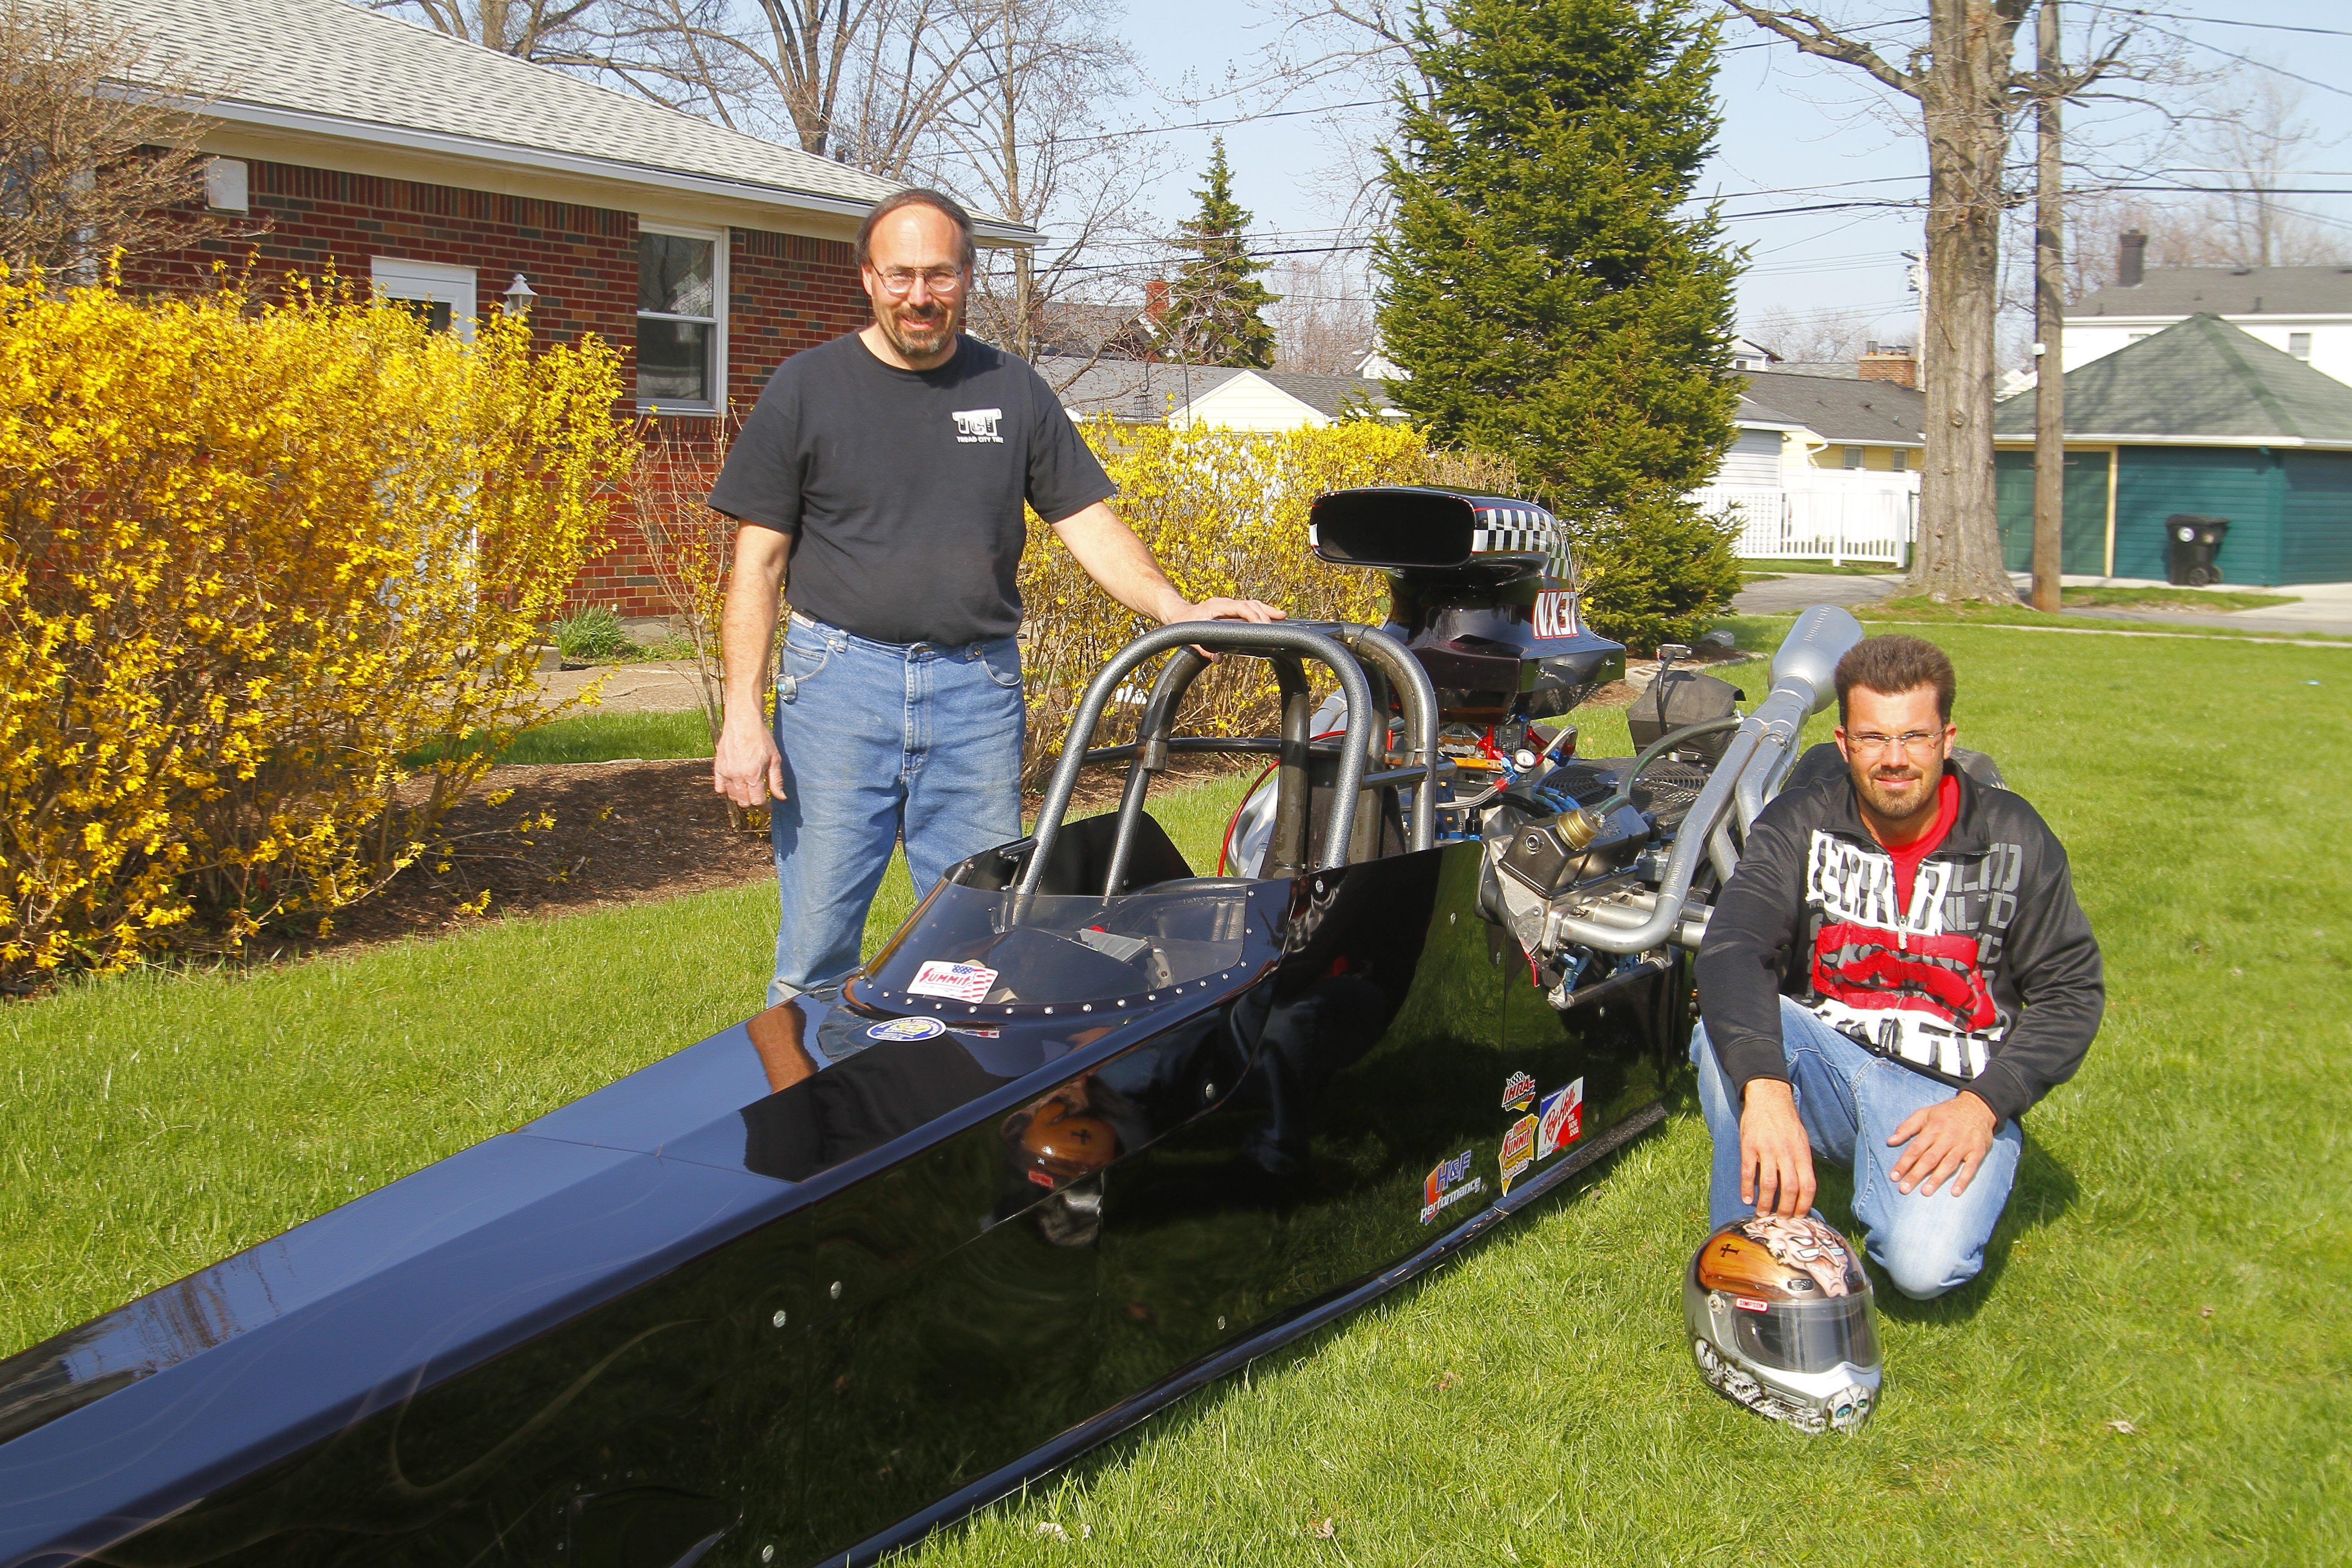 Pete Maduri Jr., right,  and his father Paul Maduri Sr. show off one of the two cars the younger Maduri will use during a racing season in which he will test his skills by participating in regional and national events in addition to local races in Lancaster.